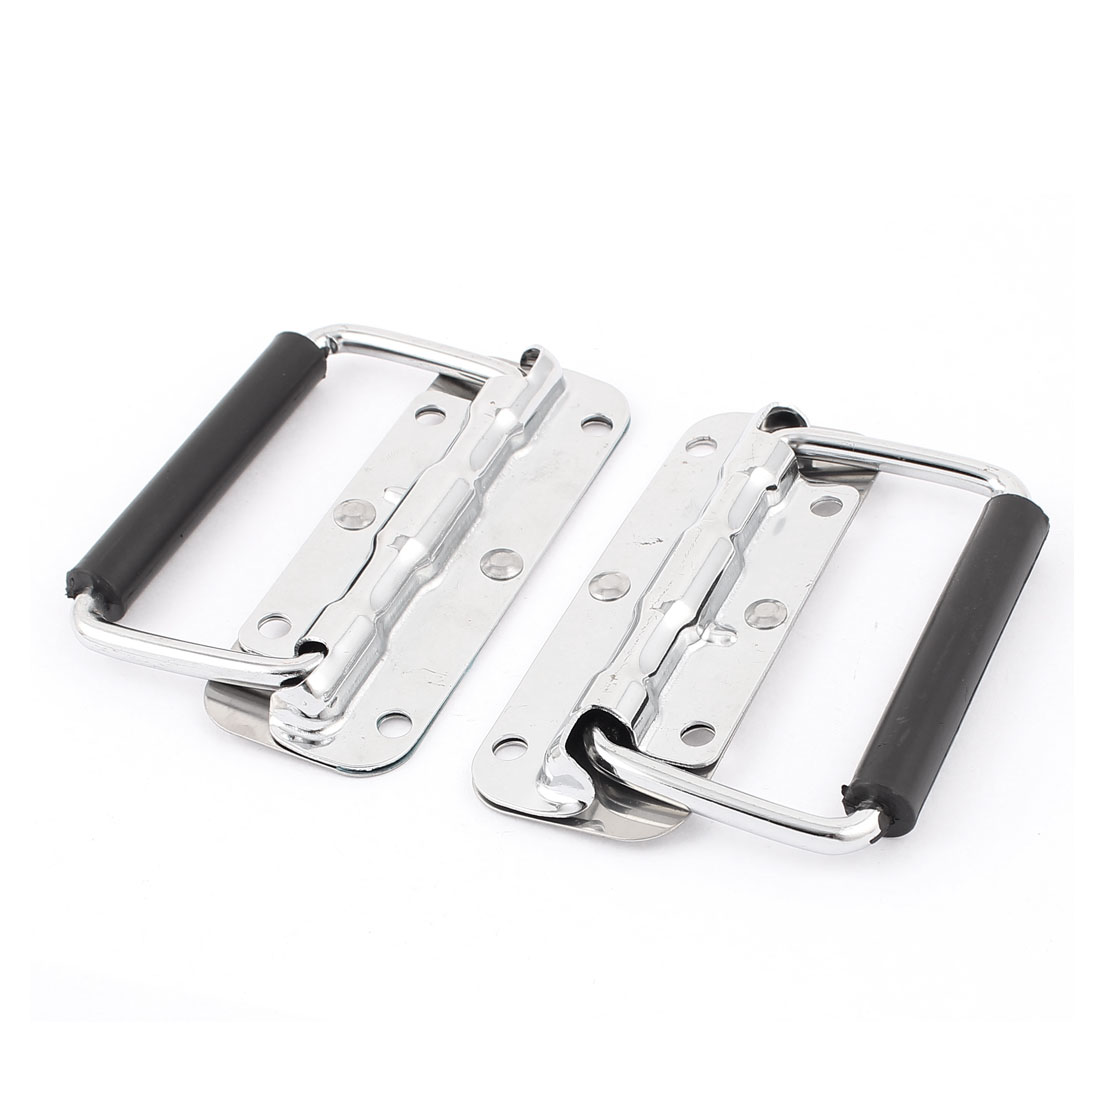 2pcs Stainless Steel Spring Loaded Toolbox Door Cabinet Box Chest Pull Handle Puller Grip